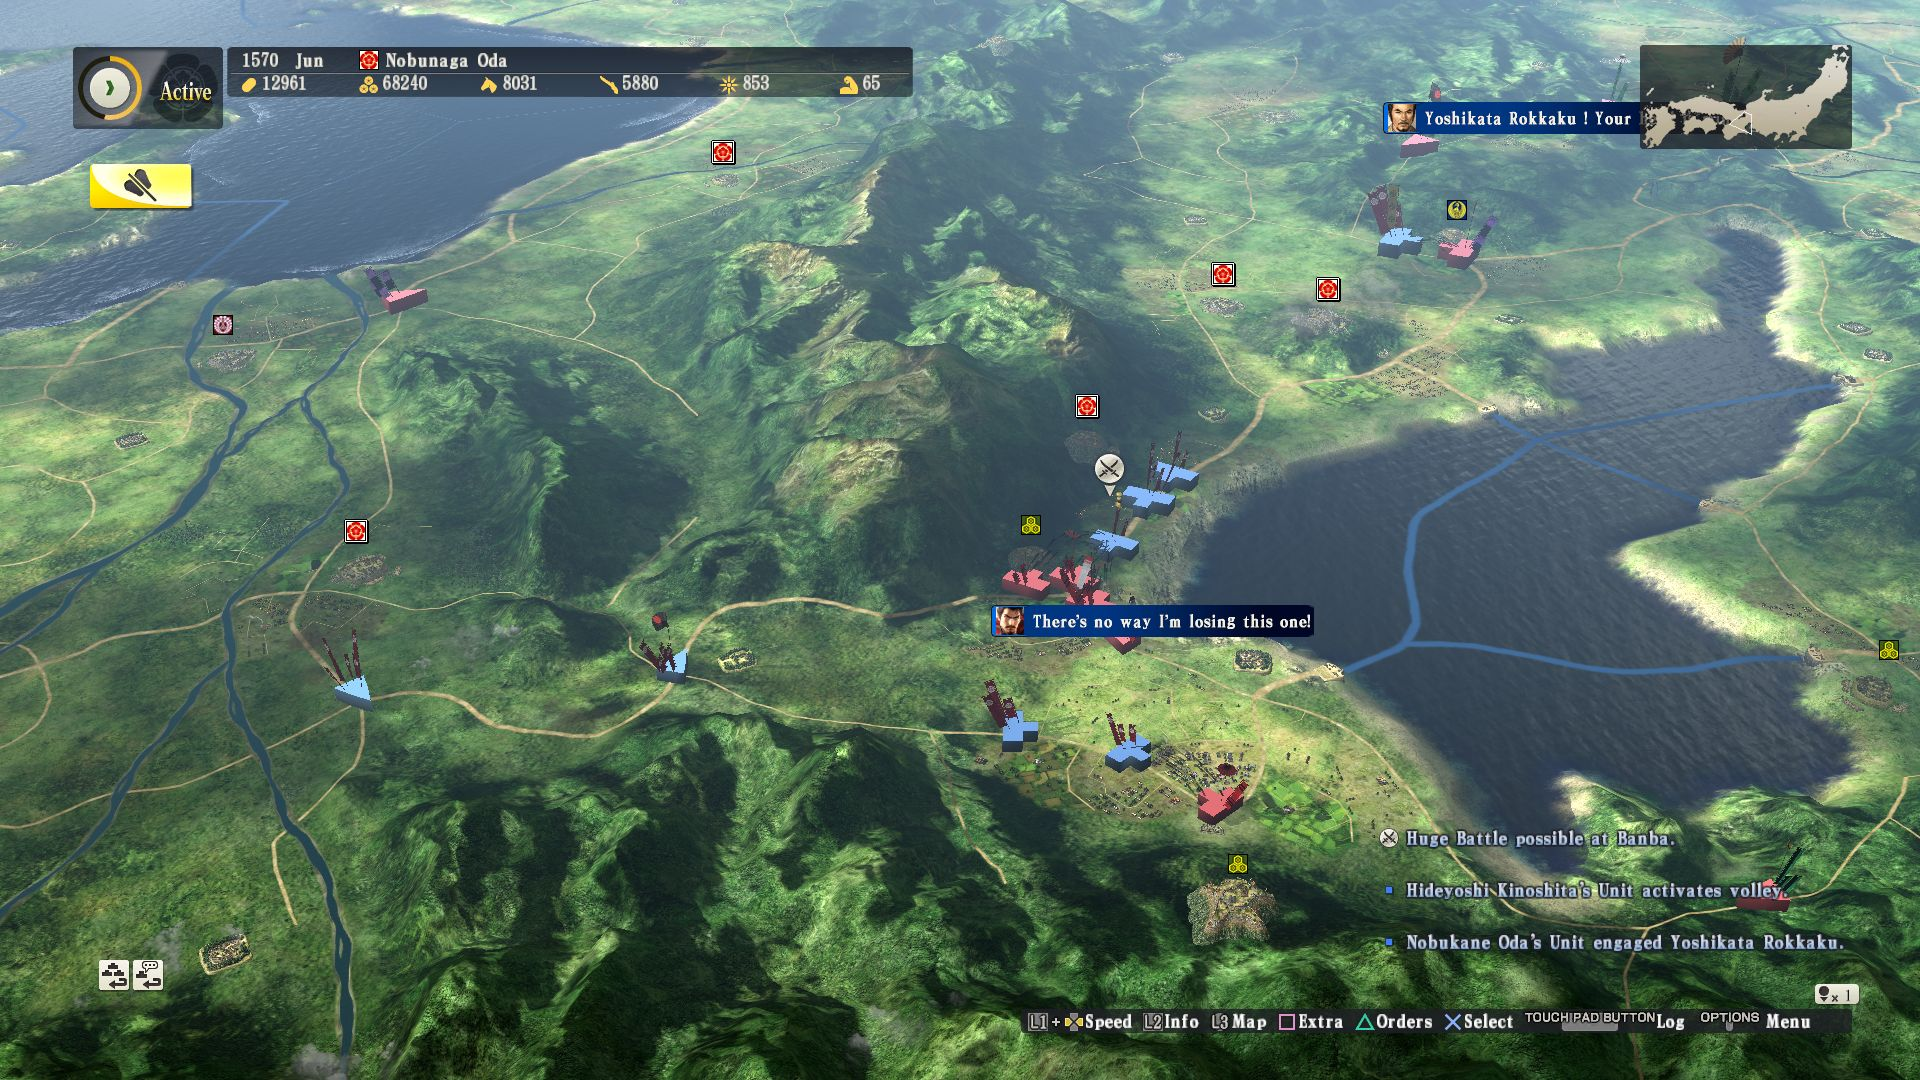 Nobunaga's Ambition Sphere of Influence Review Screenshot 3